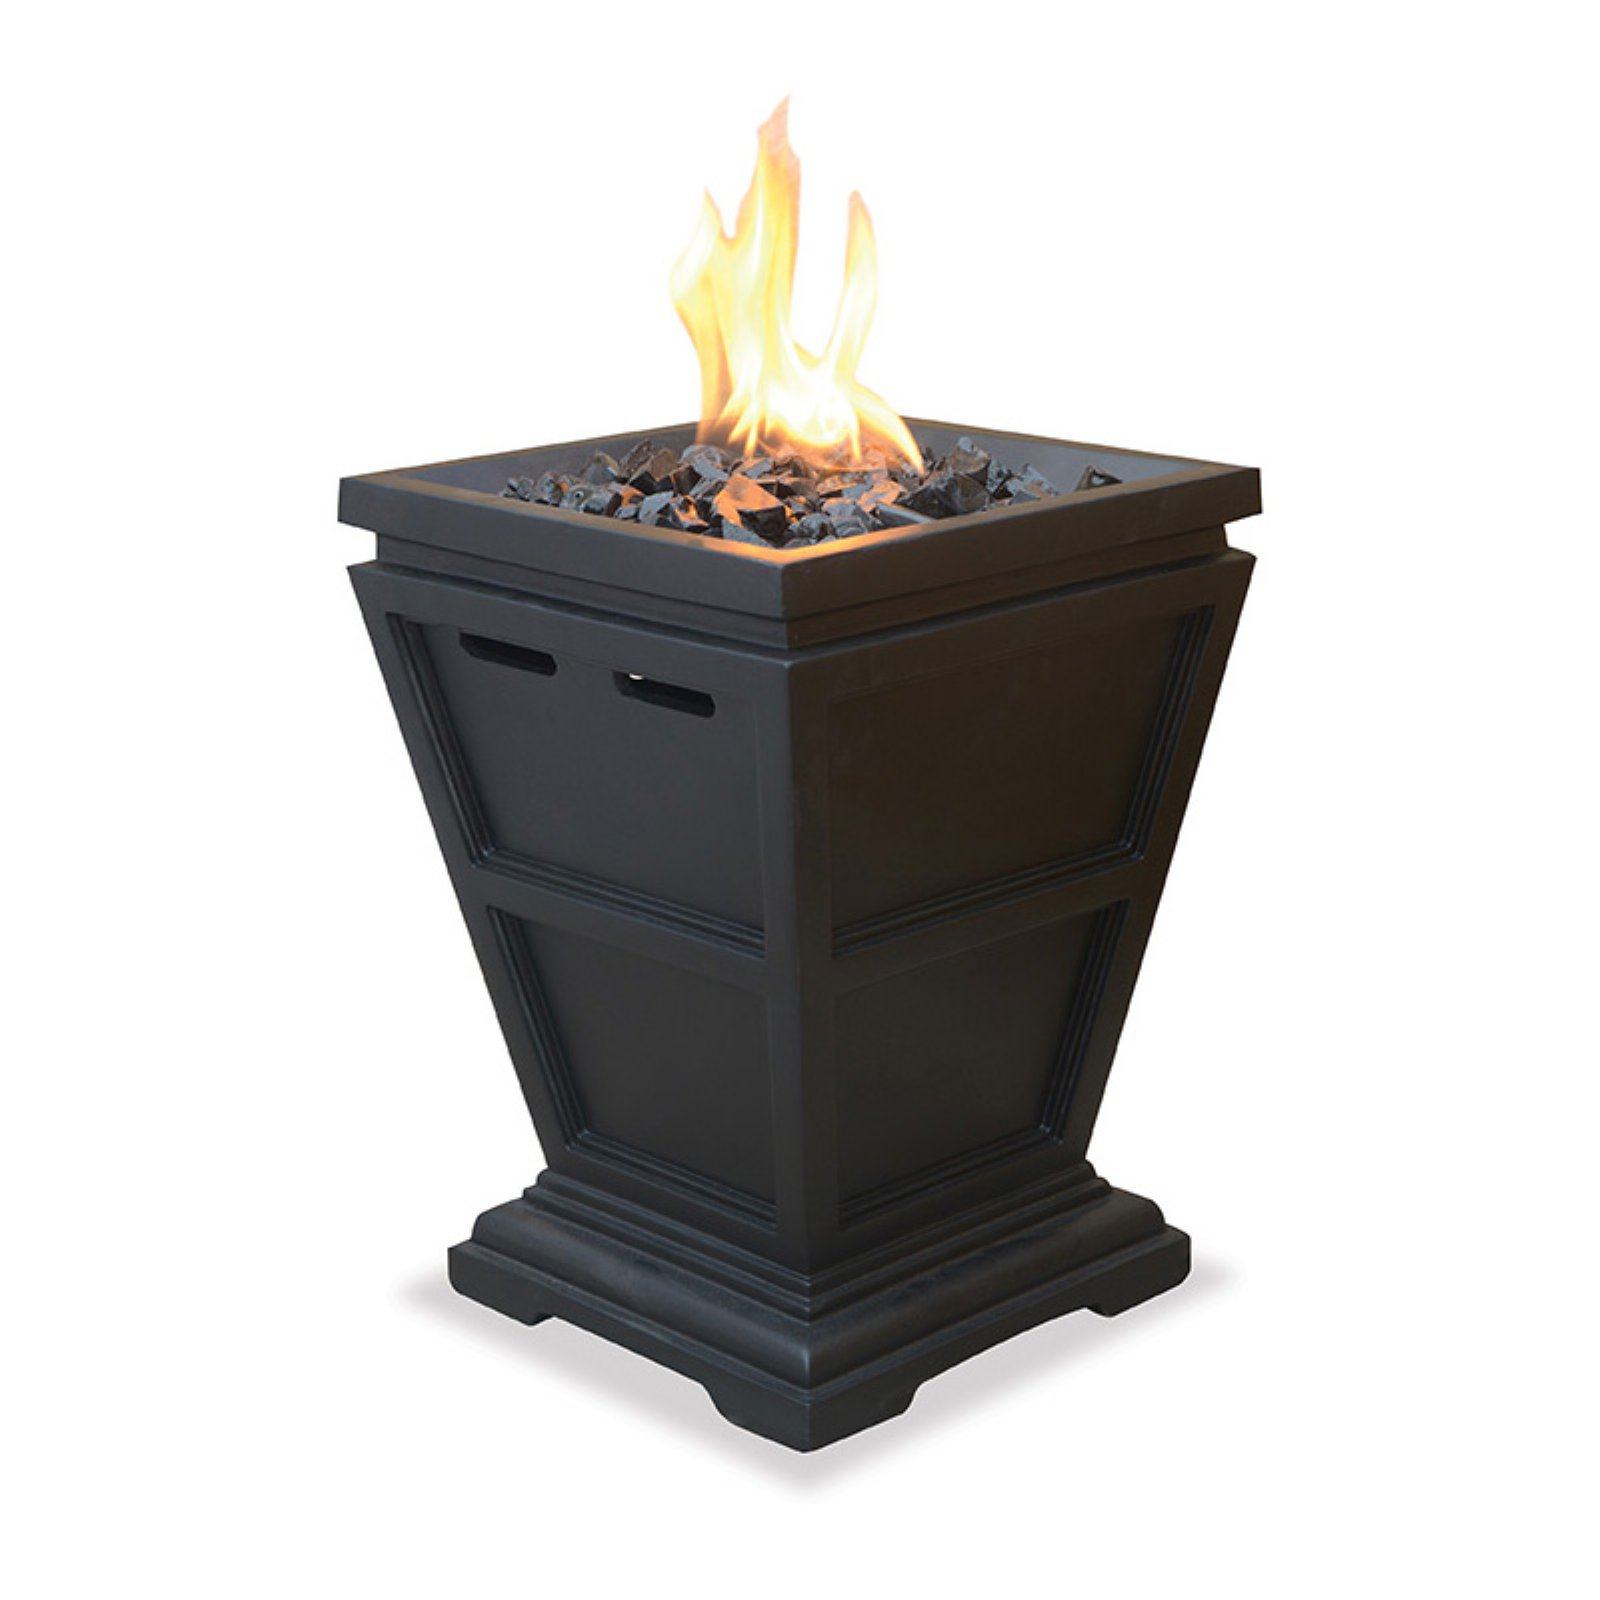 Bon UniFlame LP Gas Fire Pit Tabletop Column   Walmart.com